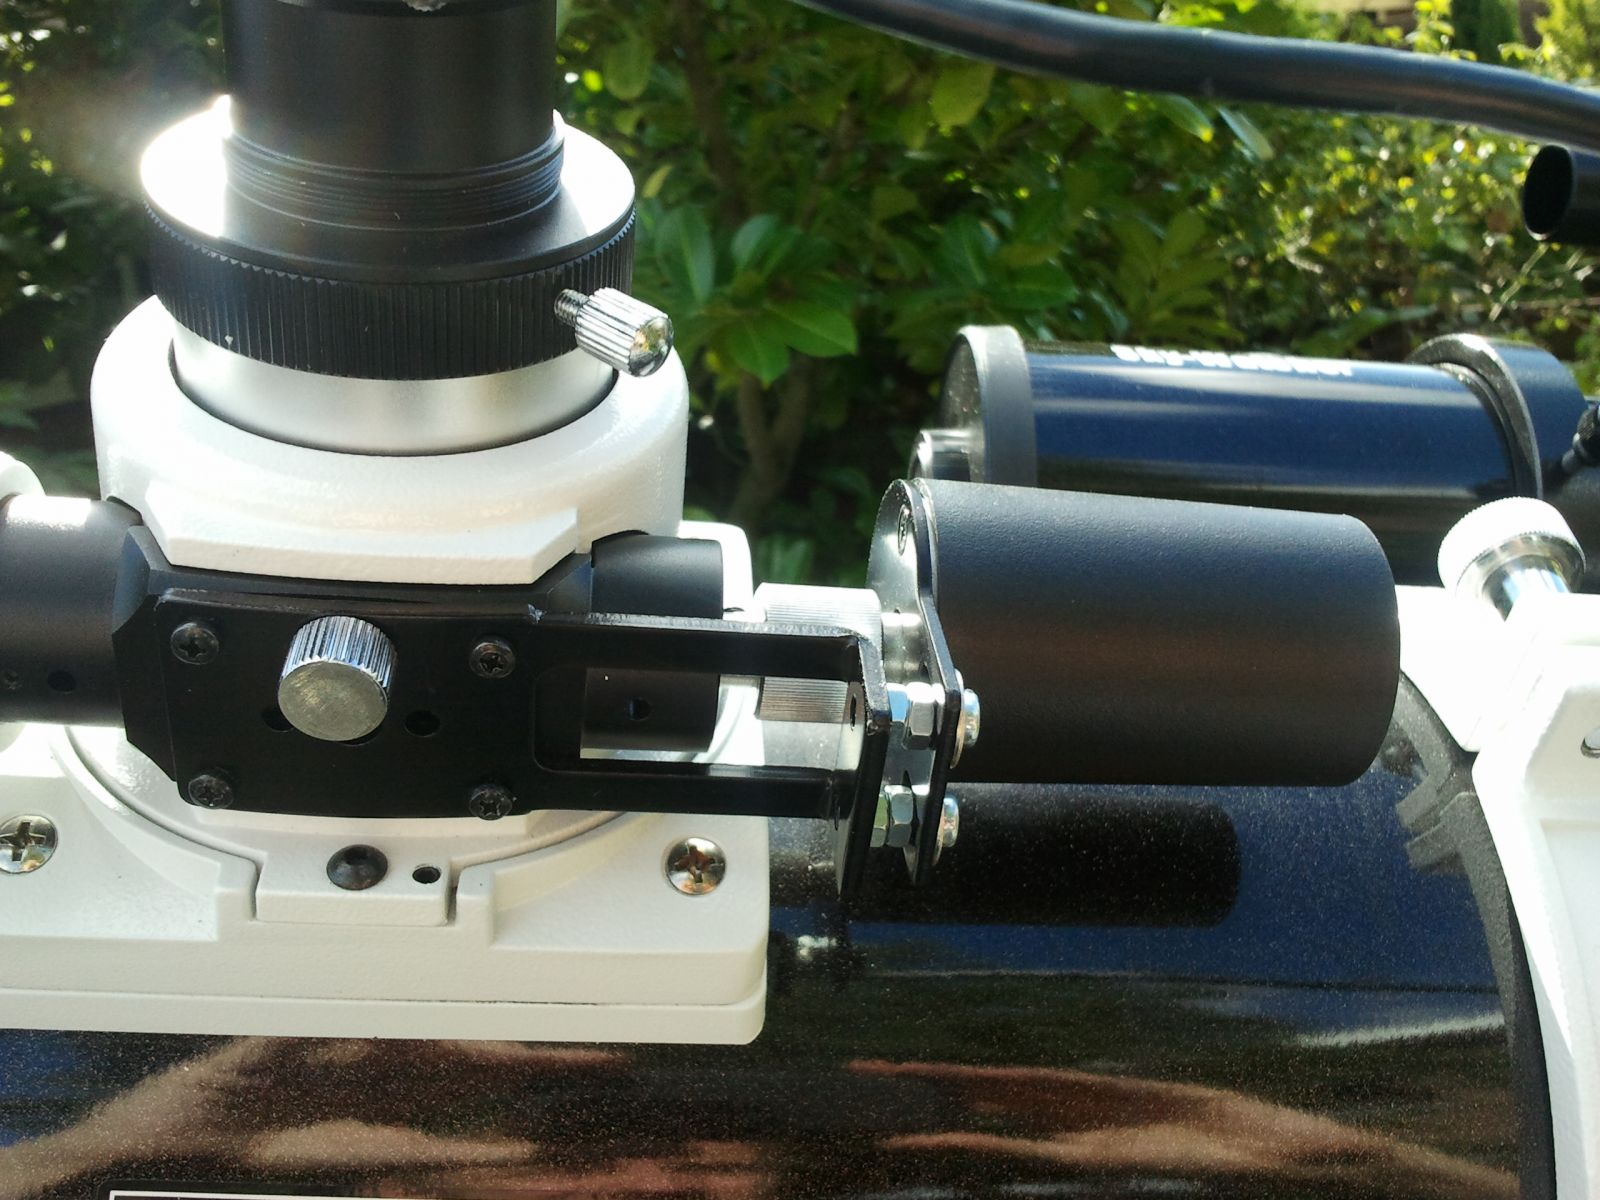 Auto focuser in place